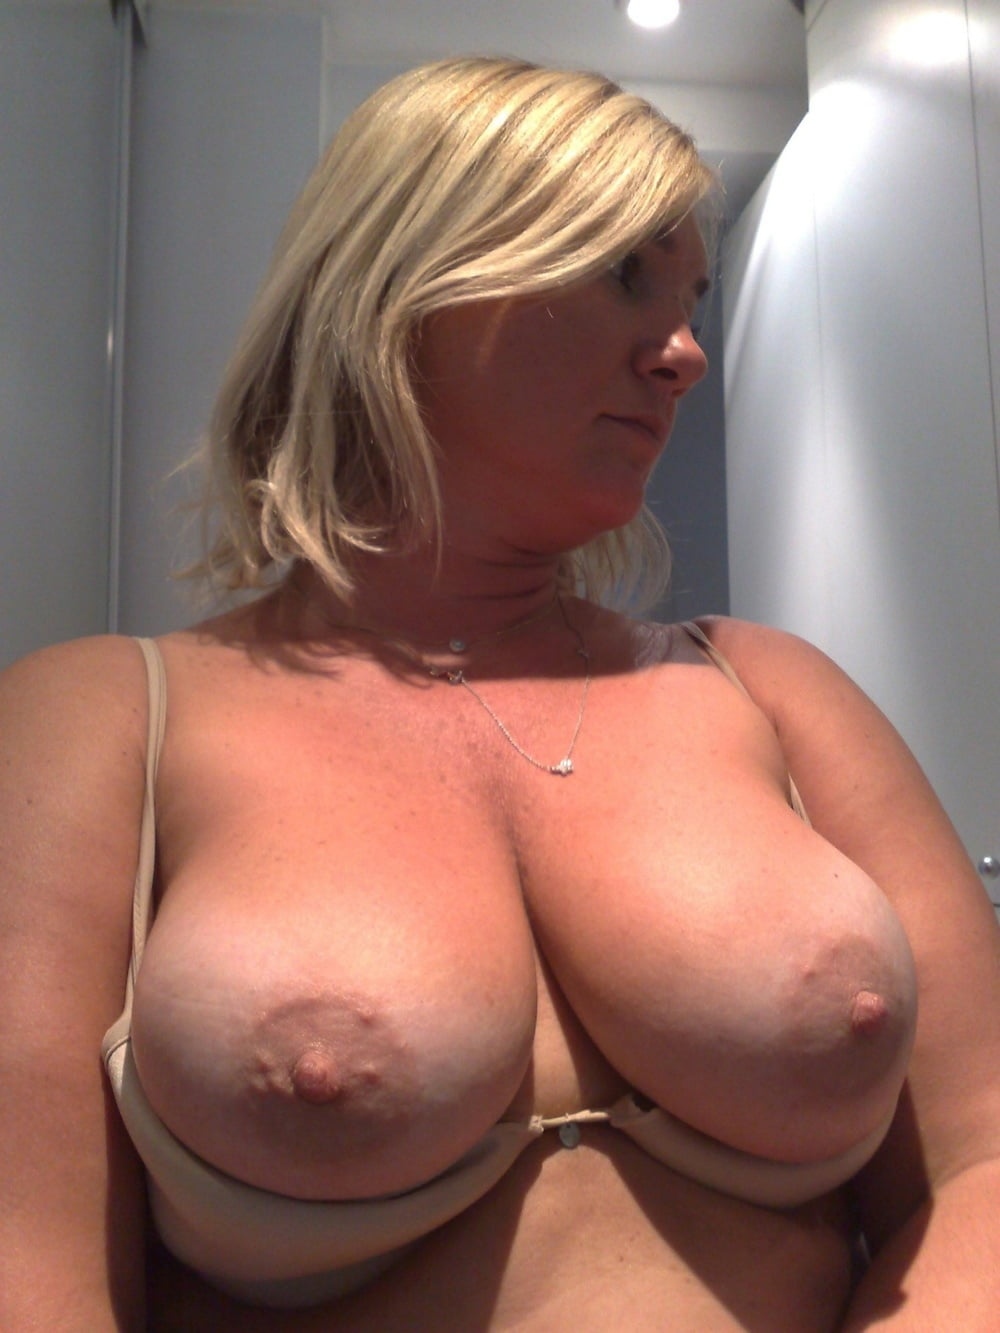 Teen show her boobs and pussy